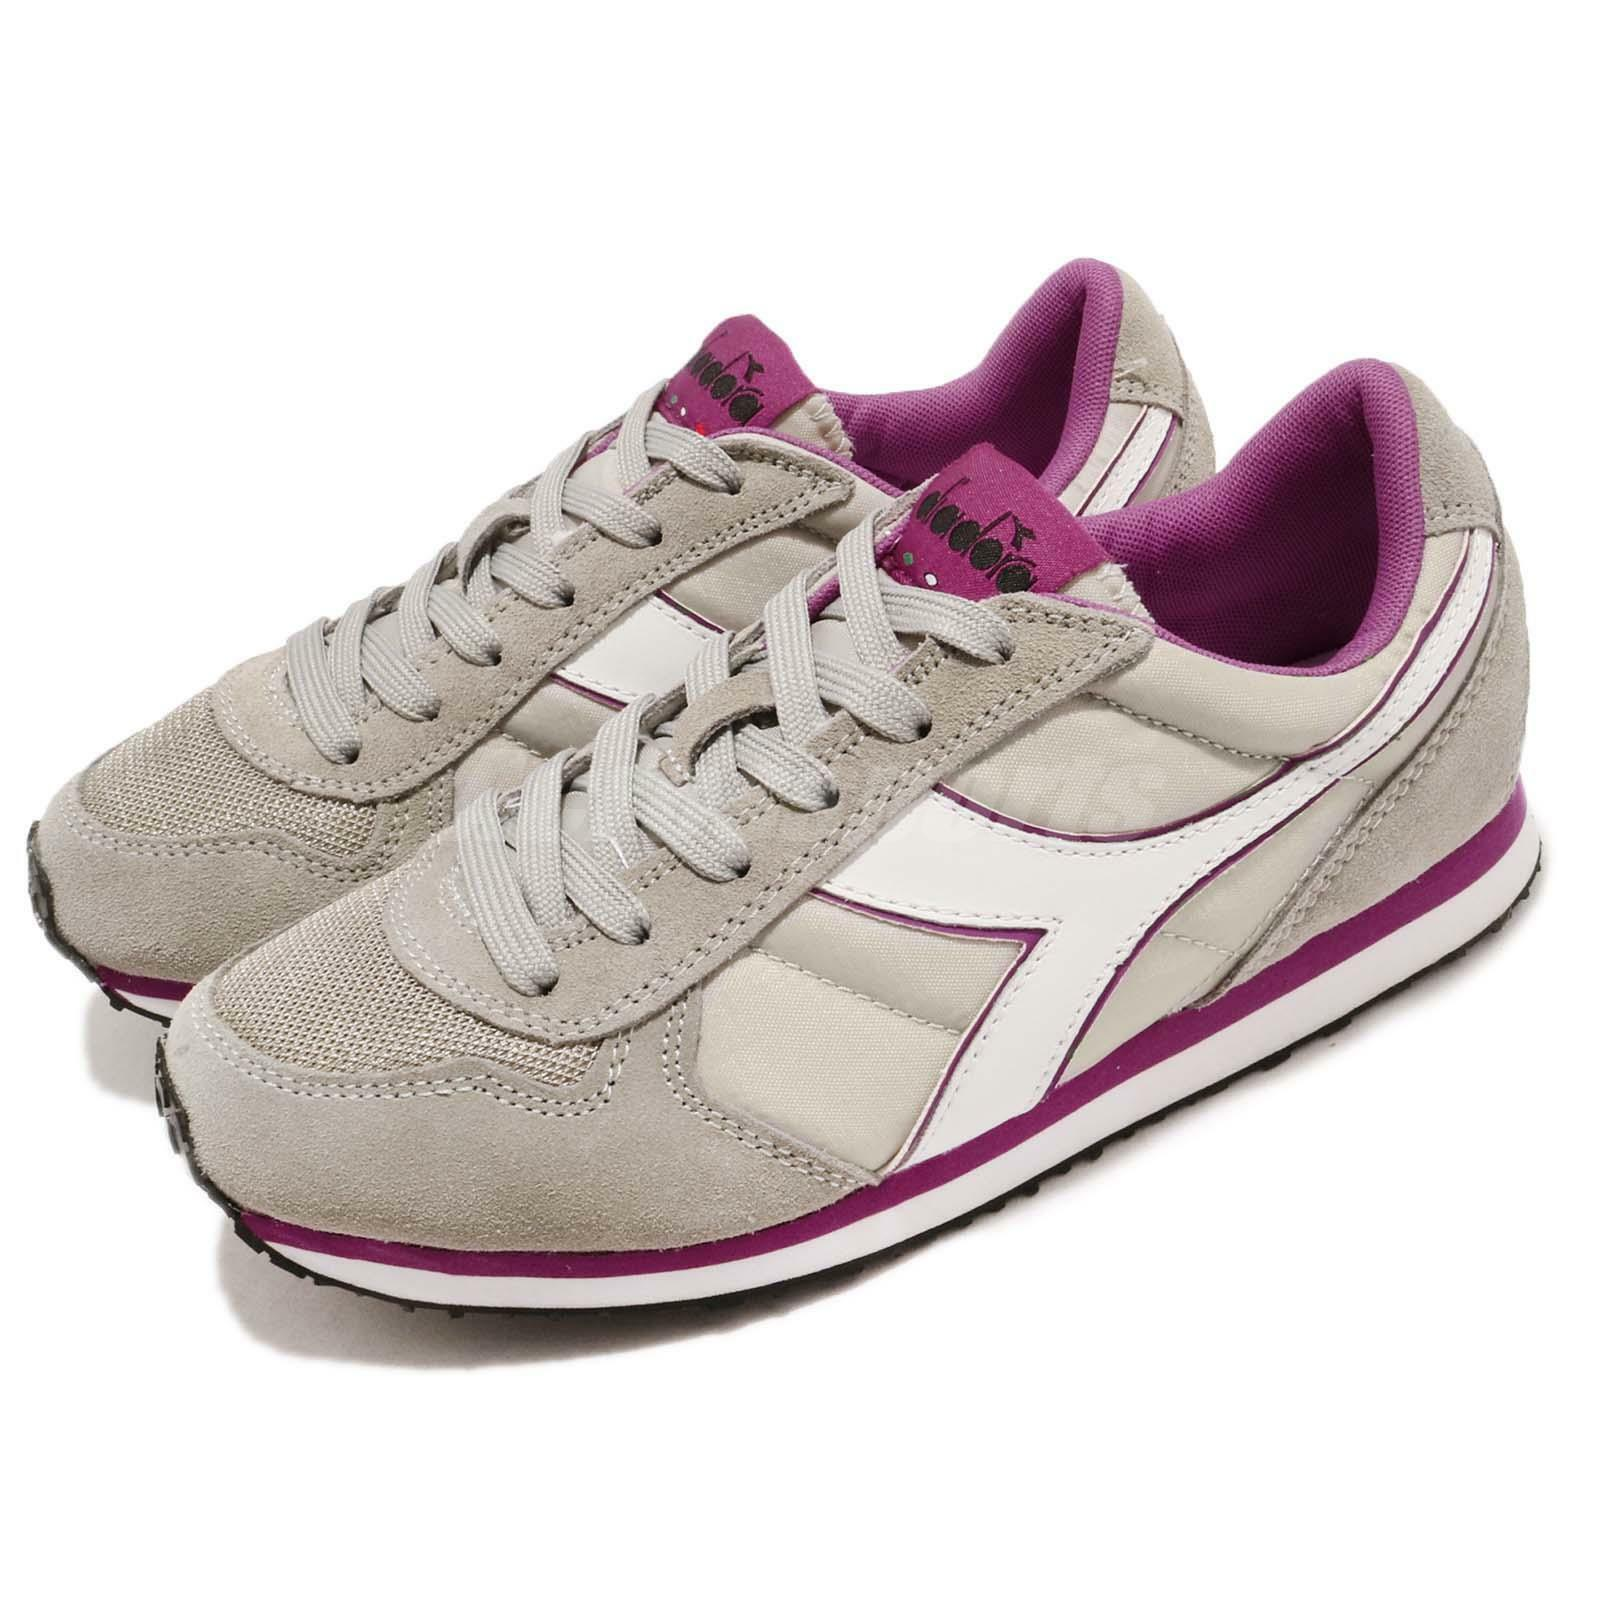 Diadora K Run Run Run Grey Purple White Uomo Running Casual Shoes  DA159554-C5907 5d44c9